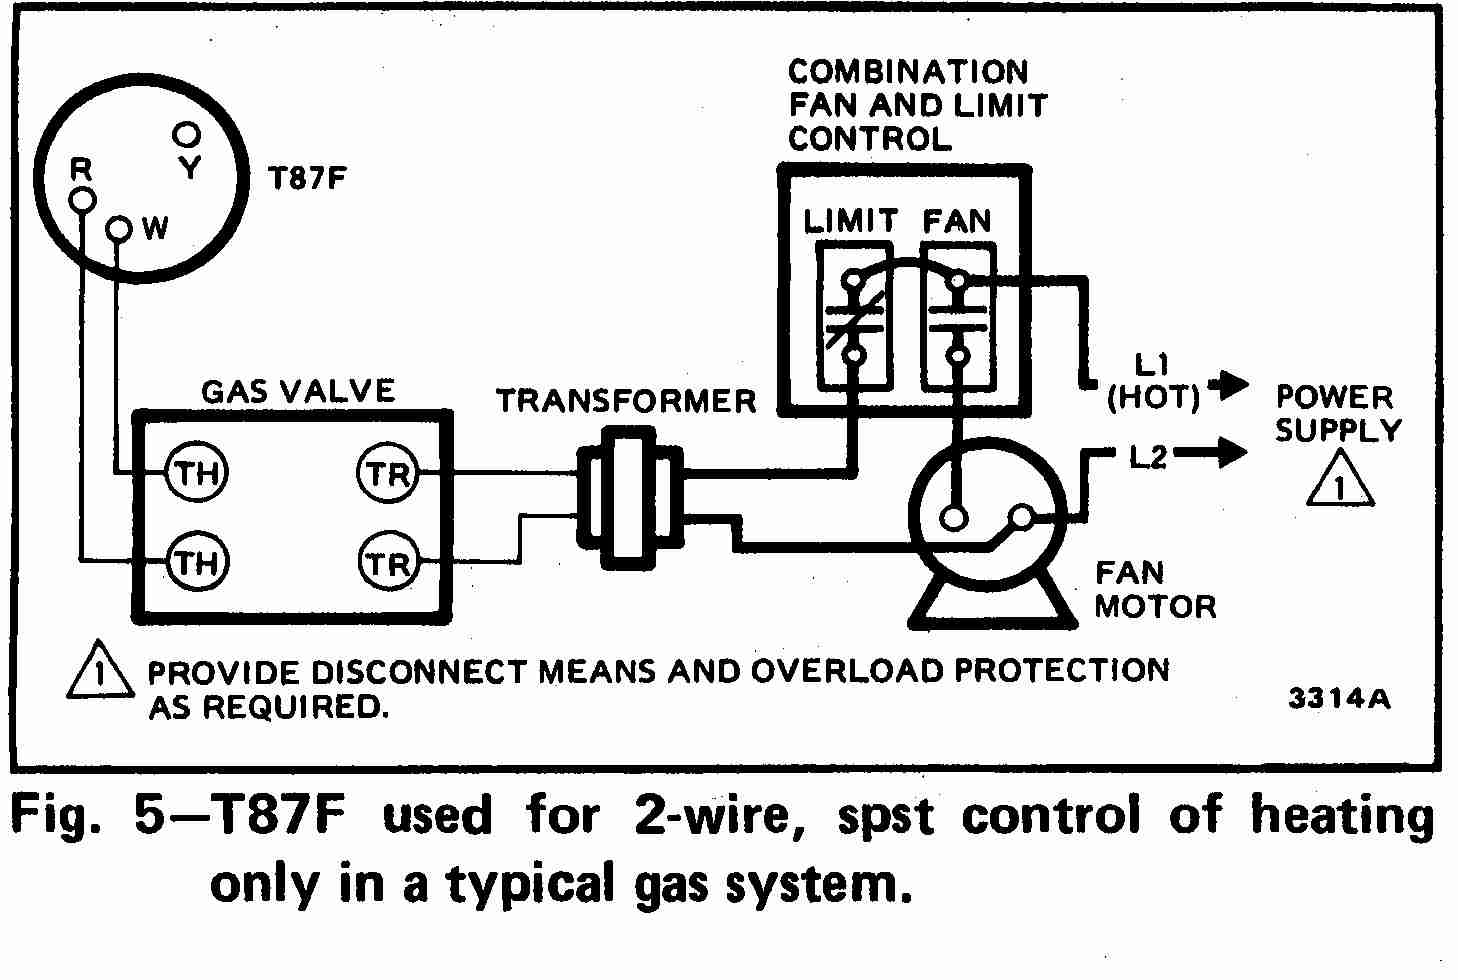 Guide To Wiring Connections For Room Thermostats Honeywell Thermostat Diagram Rth2510 T87f 2 Wire Spst Control Of Heating Only In